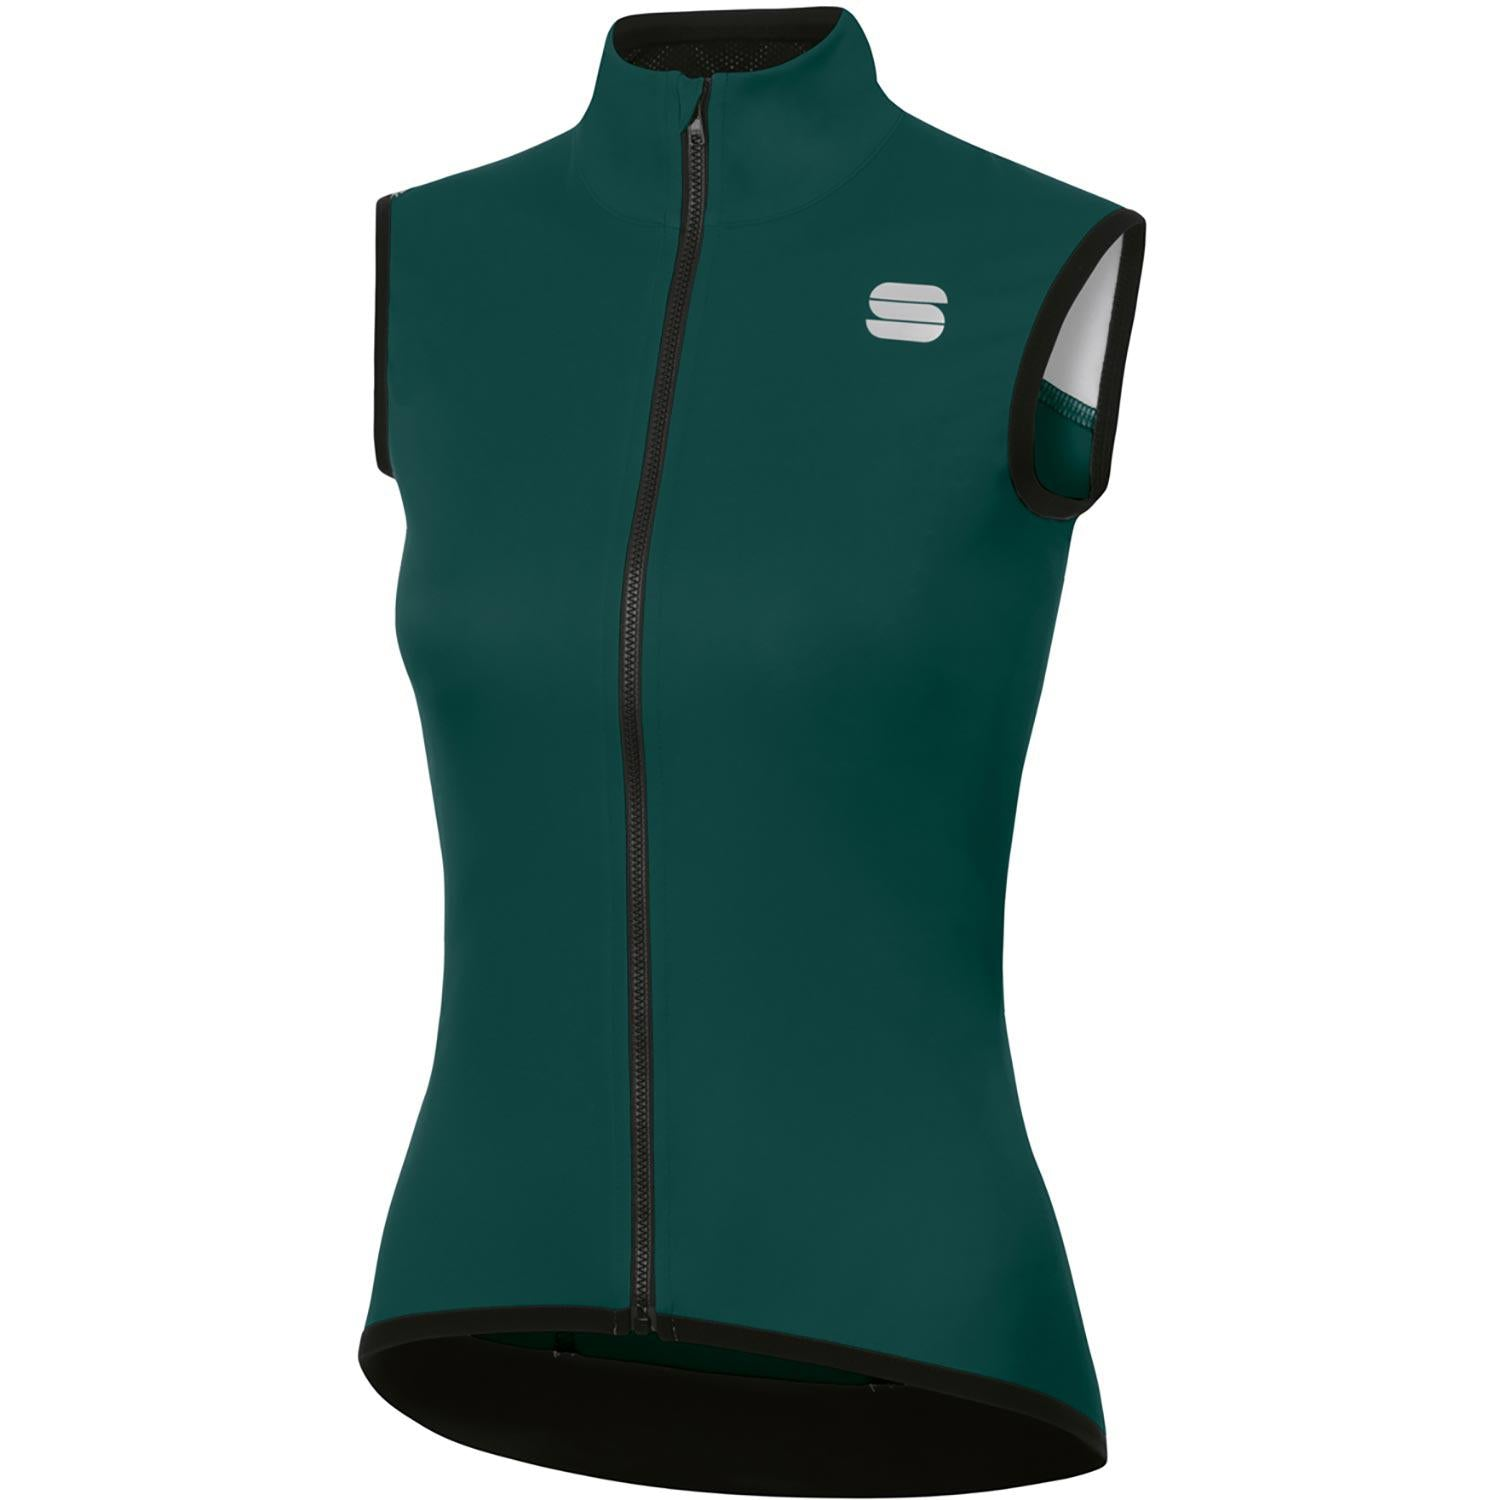 Sportful-Sportful Fiandre Light NoRain Women's Vest-Sea Moss-XS-SF205193291-saddleback-elite-performance-cycling